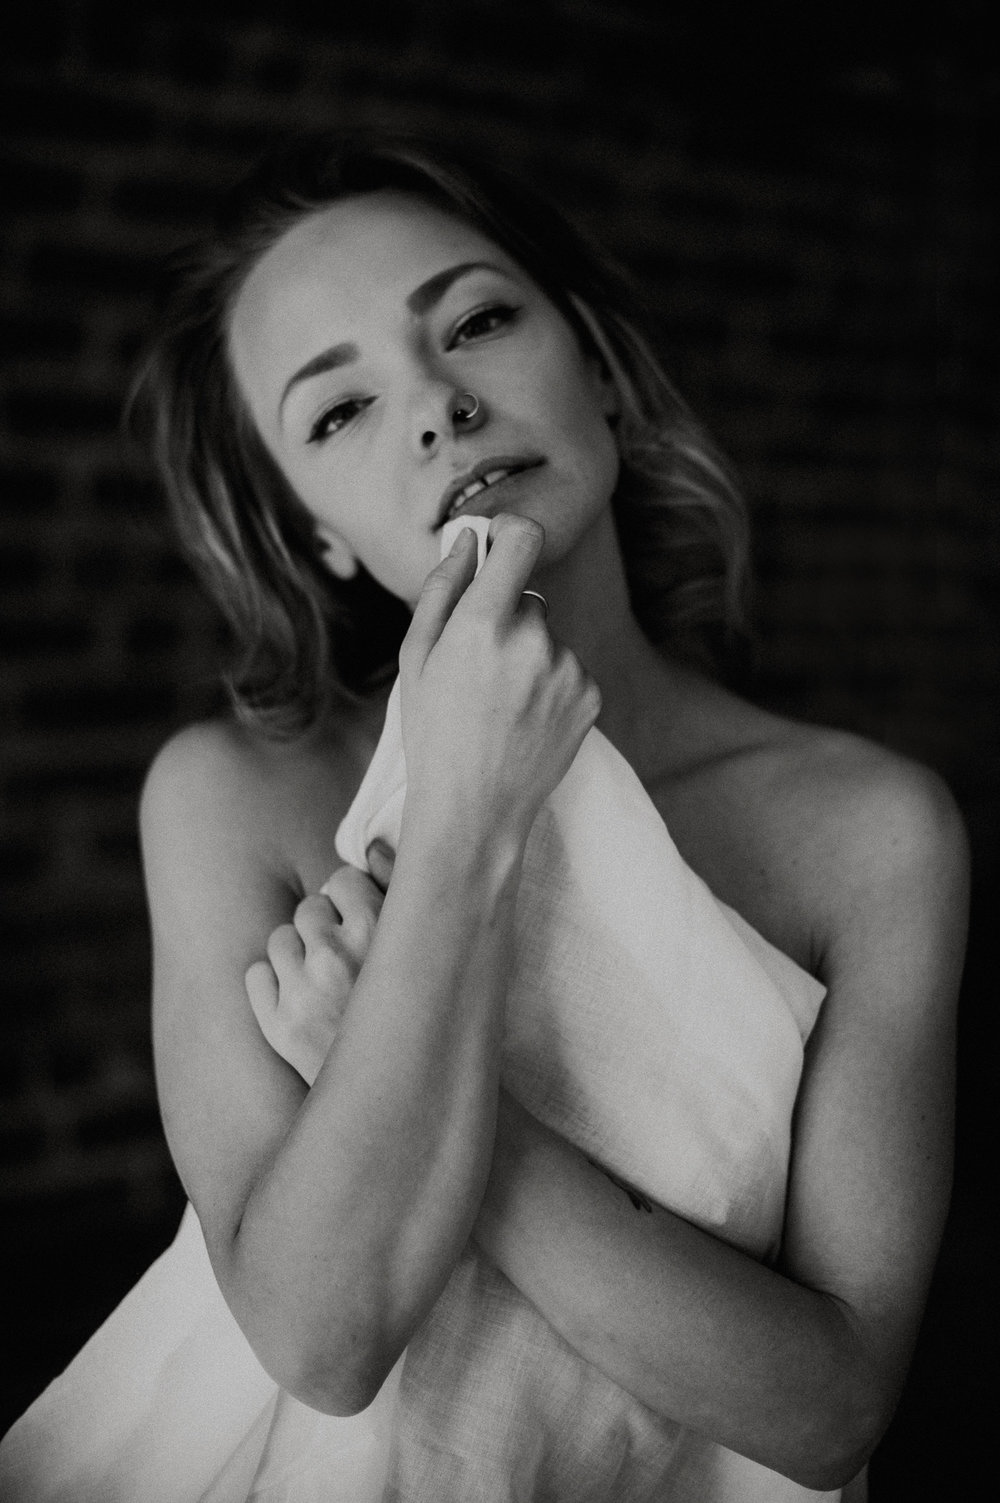 Julie-Portraits x Boudoir (41 of 53).jpg